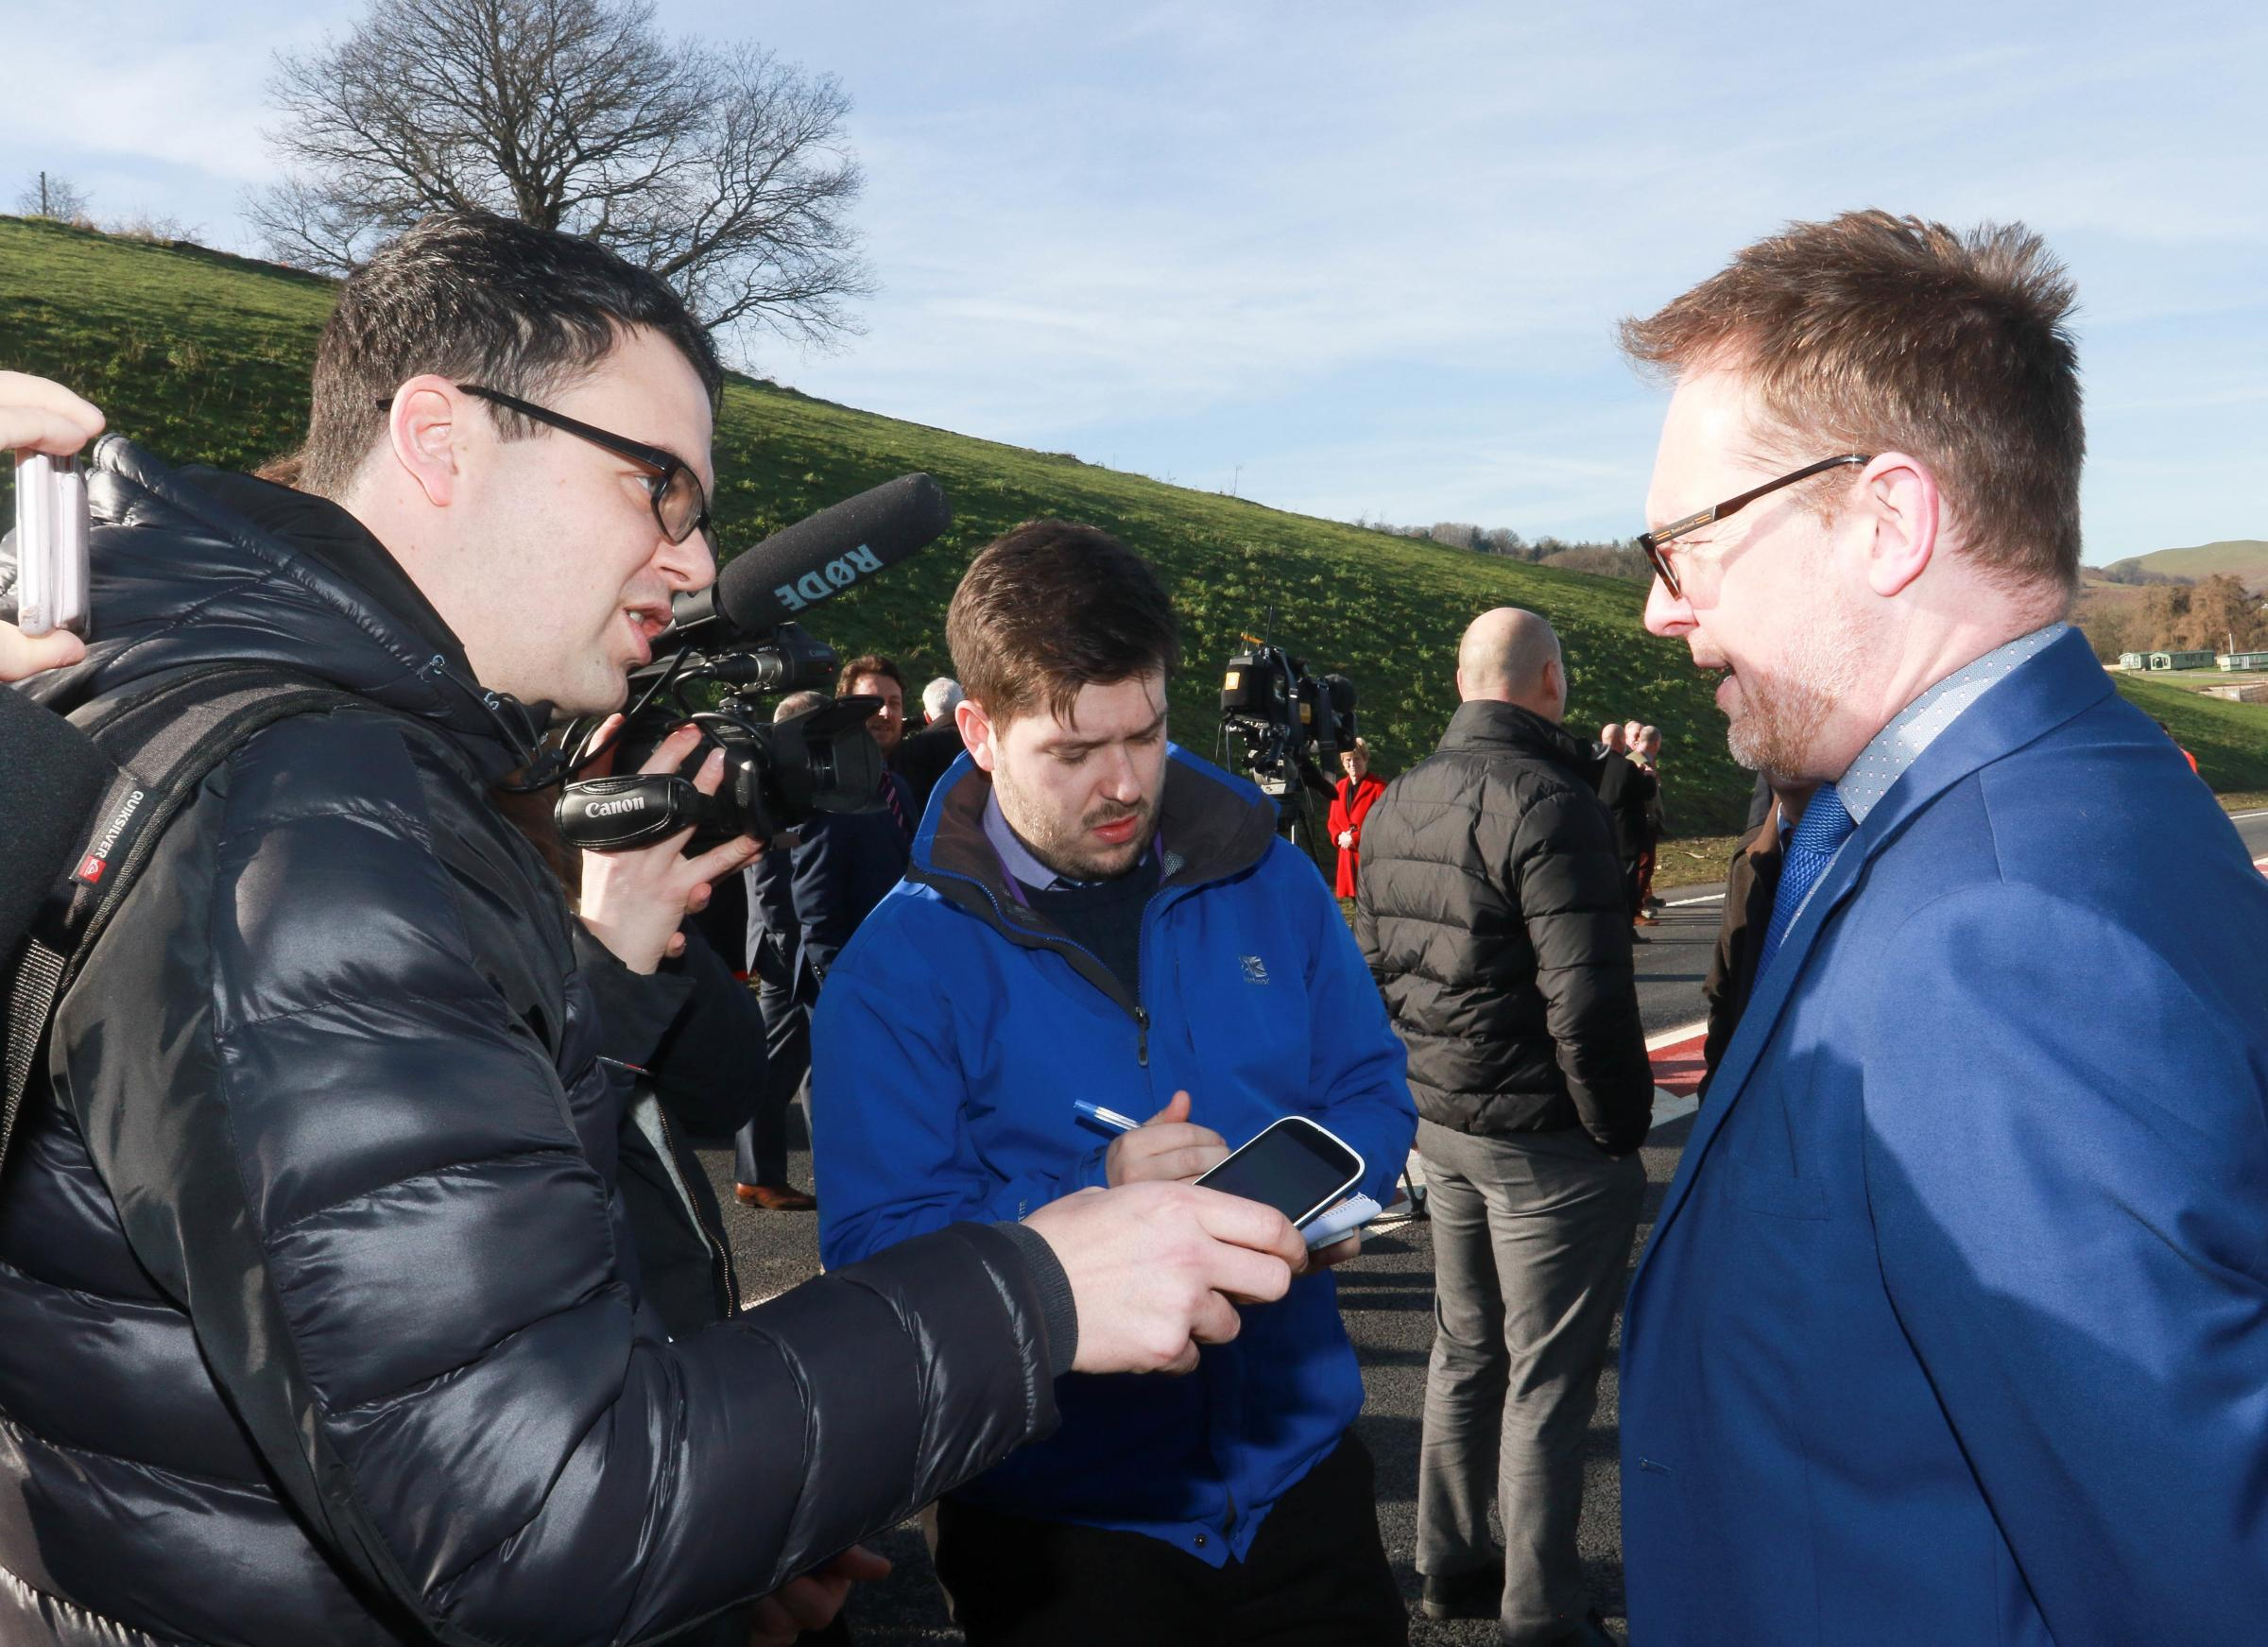 Newtown Bypass opening last Thursday 14th February 2019 by Transport Minister Ken Skates AM..Pictured is Mike Sheridan and Russell George..Picture by Phil Blagg..PB068-2019-33.